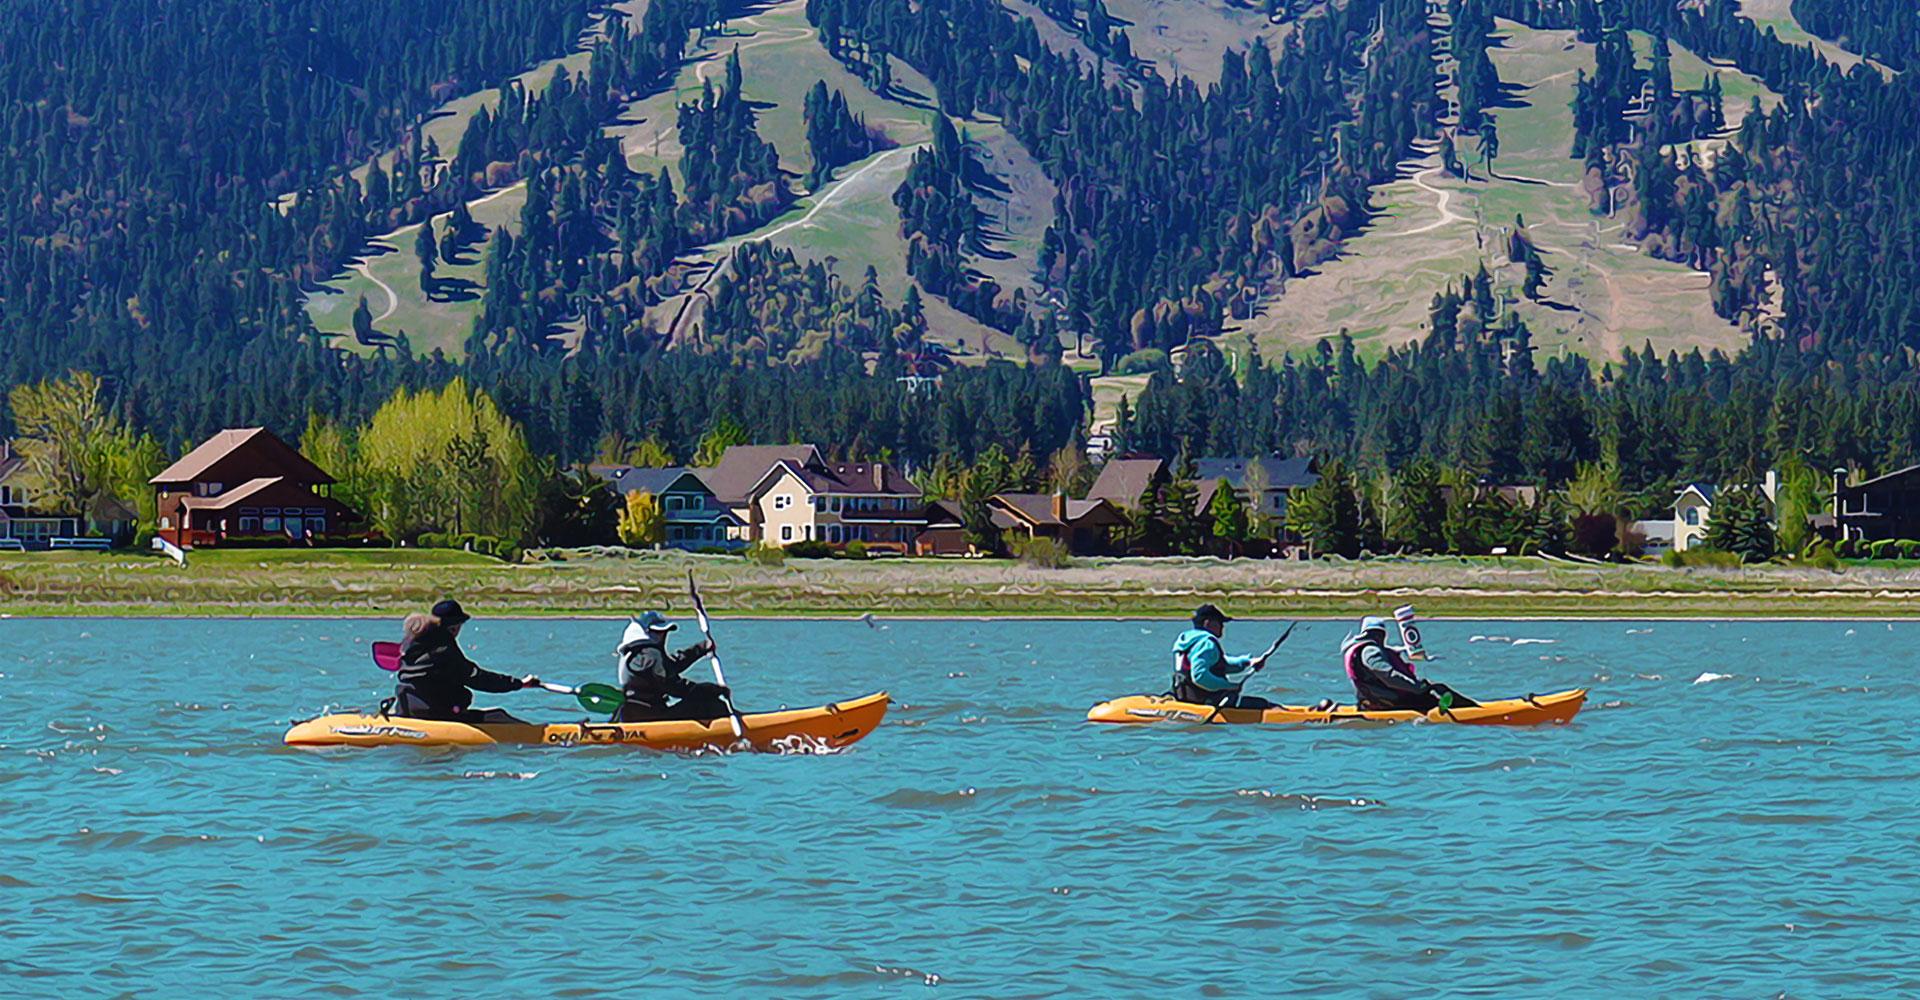 2 orange 2-person kayaks on Big Bear Lake. Mountains and lake houses in the background.